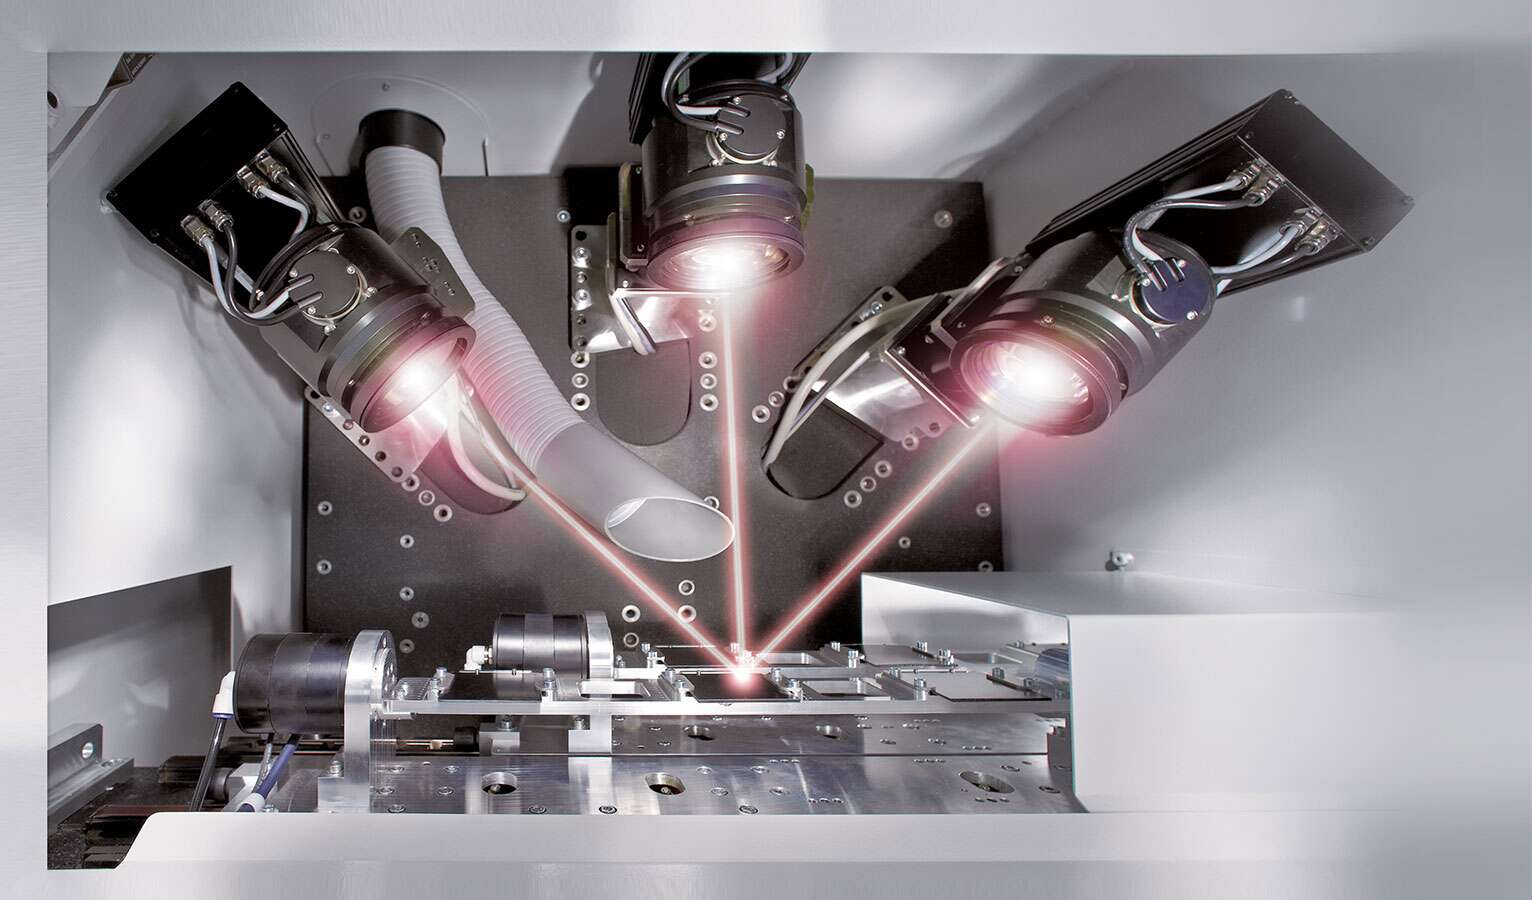 Usinage laser de supports de circuits et de circuits imprimés (crédit photo : LPKF/LDS)